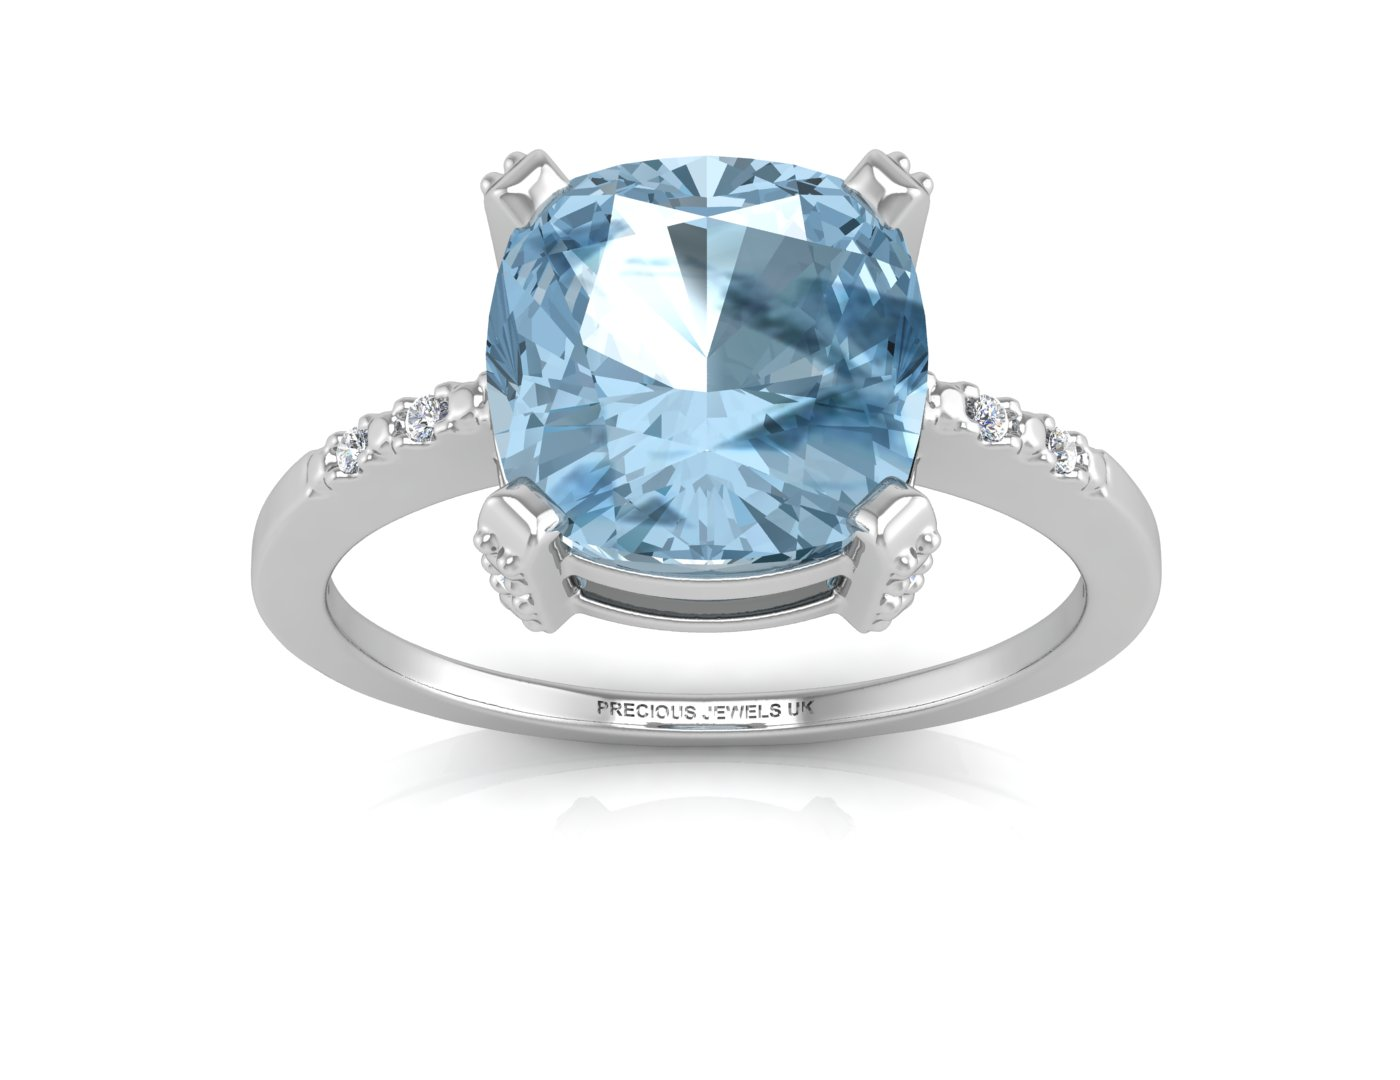 9ct White Gold Diamond And Blue Topaz Ring 0.04 Carats - Image 3 of 4